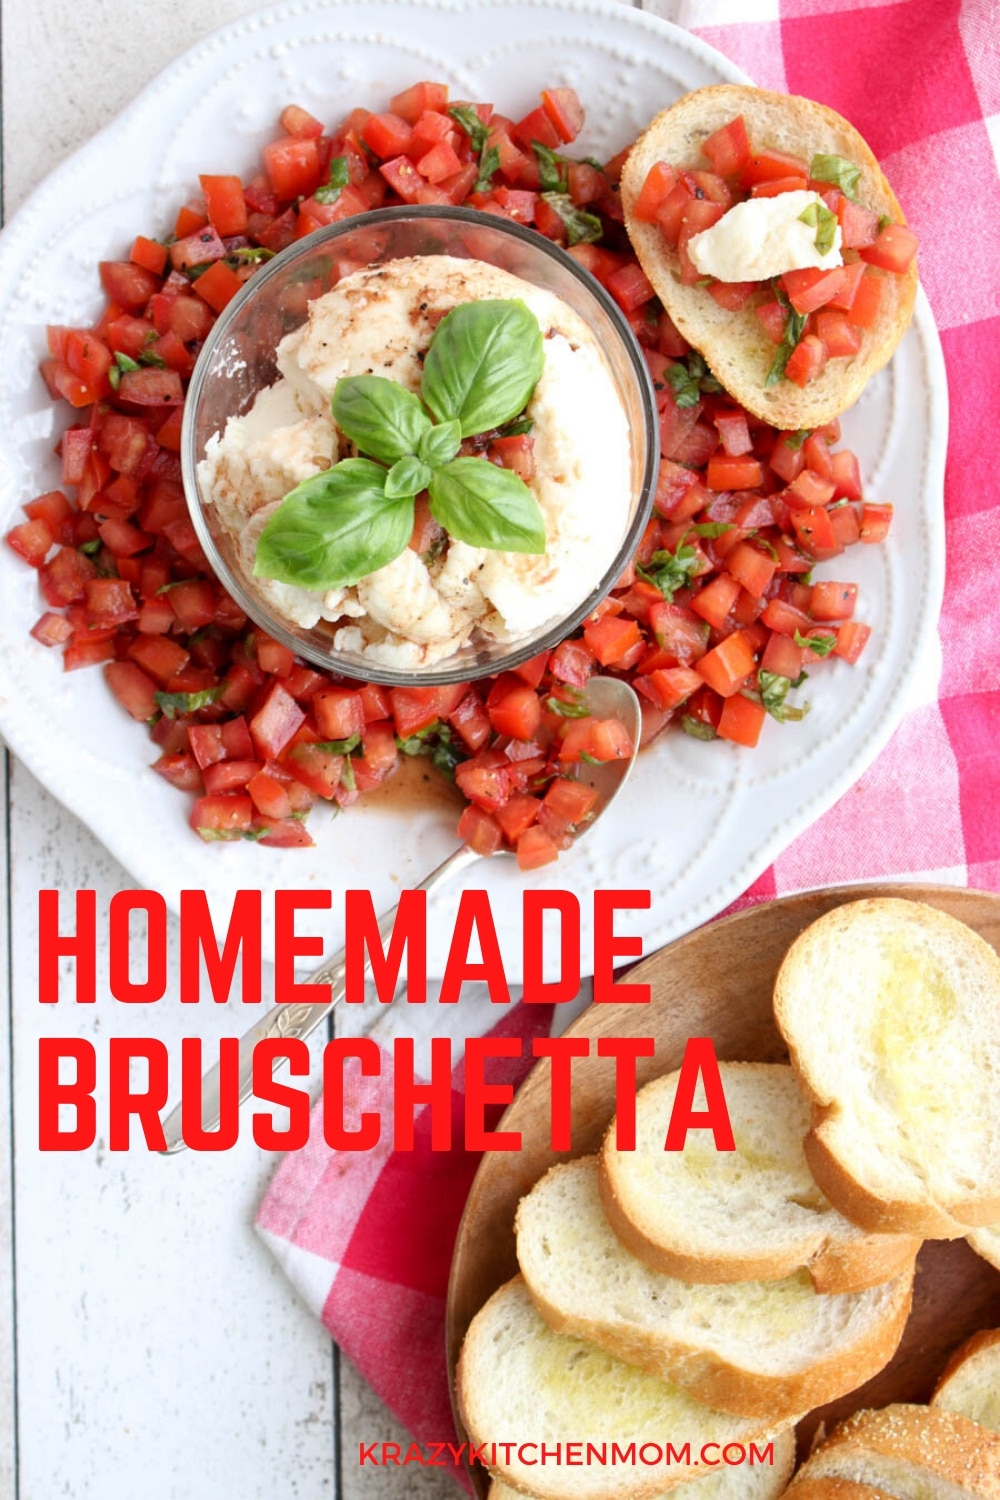 A delicious and super simple appetizer that's ready in less than 10 minutes. It's bright, fresh, and bursting with flavor. The perfect bite for a light lunch, brunch, or just an afternoon snack. via @krazykitchenmom